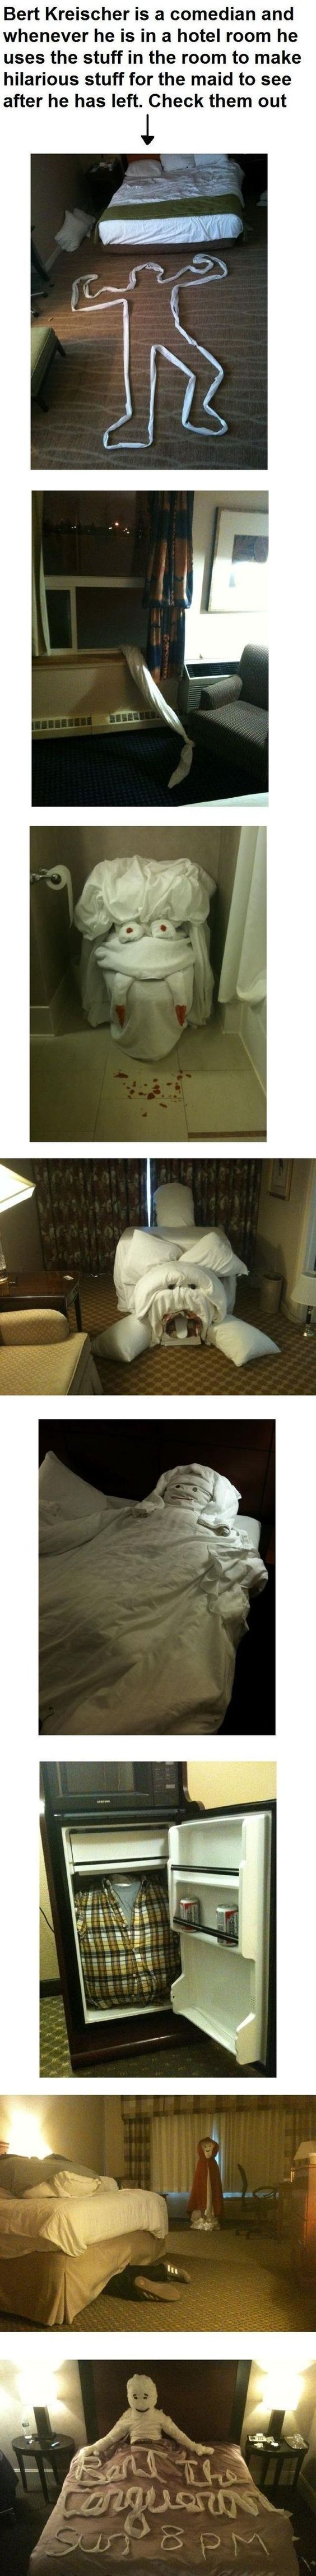 Several very funny ways to scare the crap out of hotel maids... using laundry.